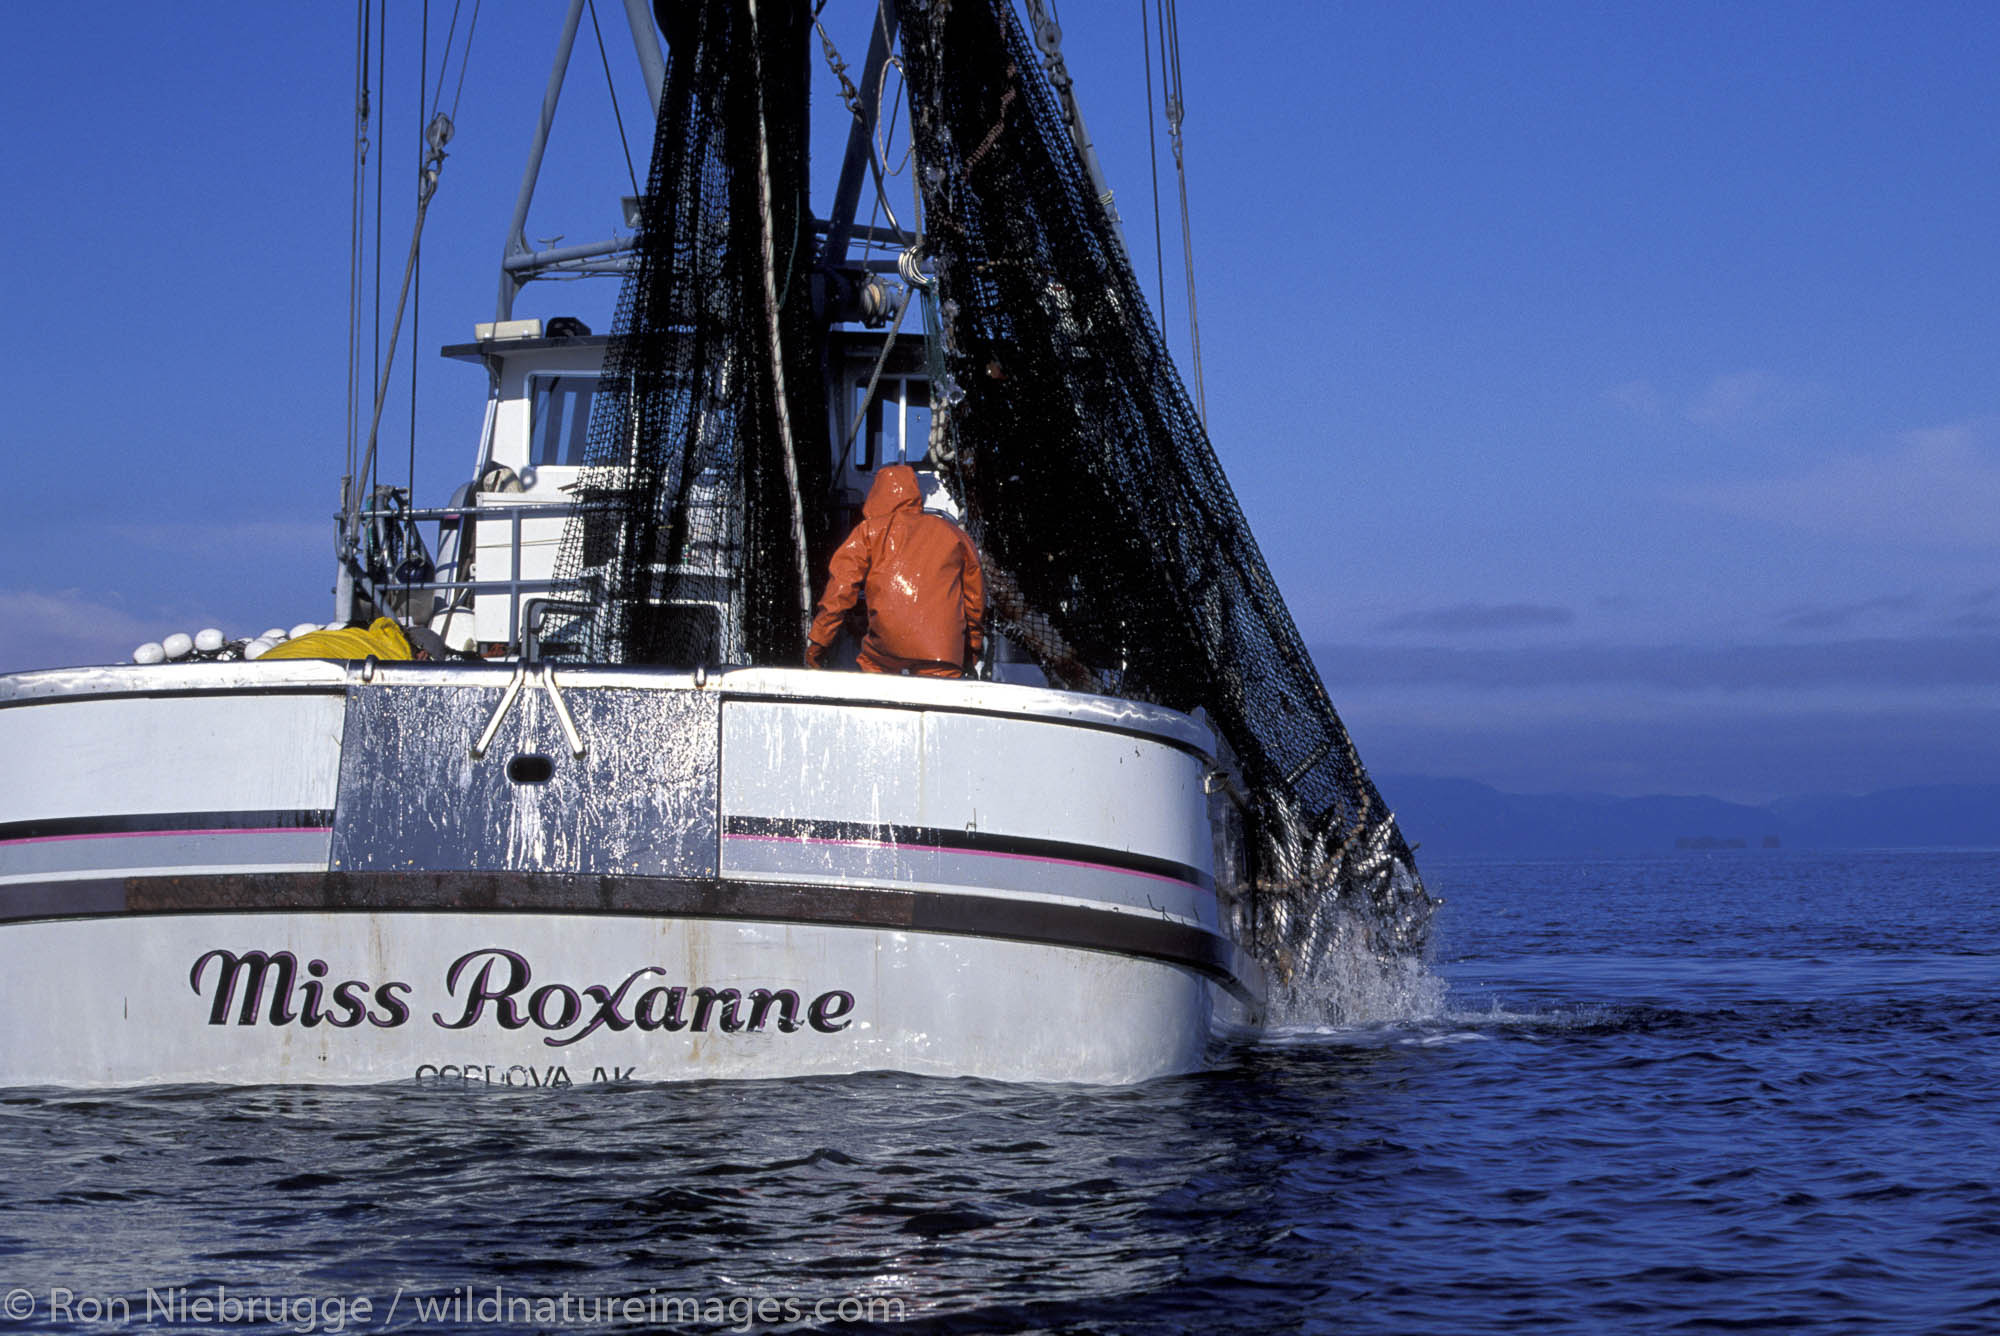 The commercial salmon seiner Miss Roxanne hauling in salmon in Prince William Sound, Alaska.